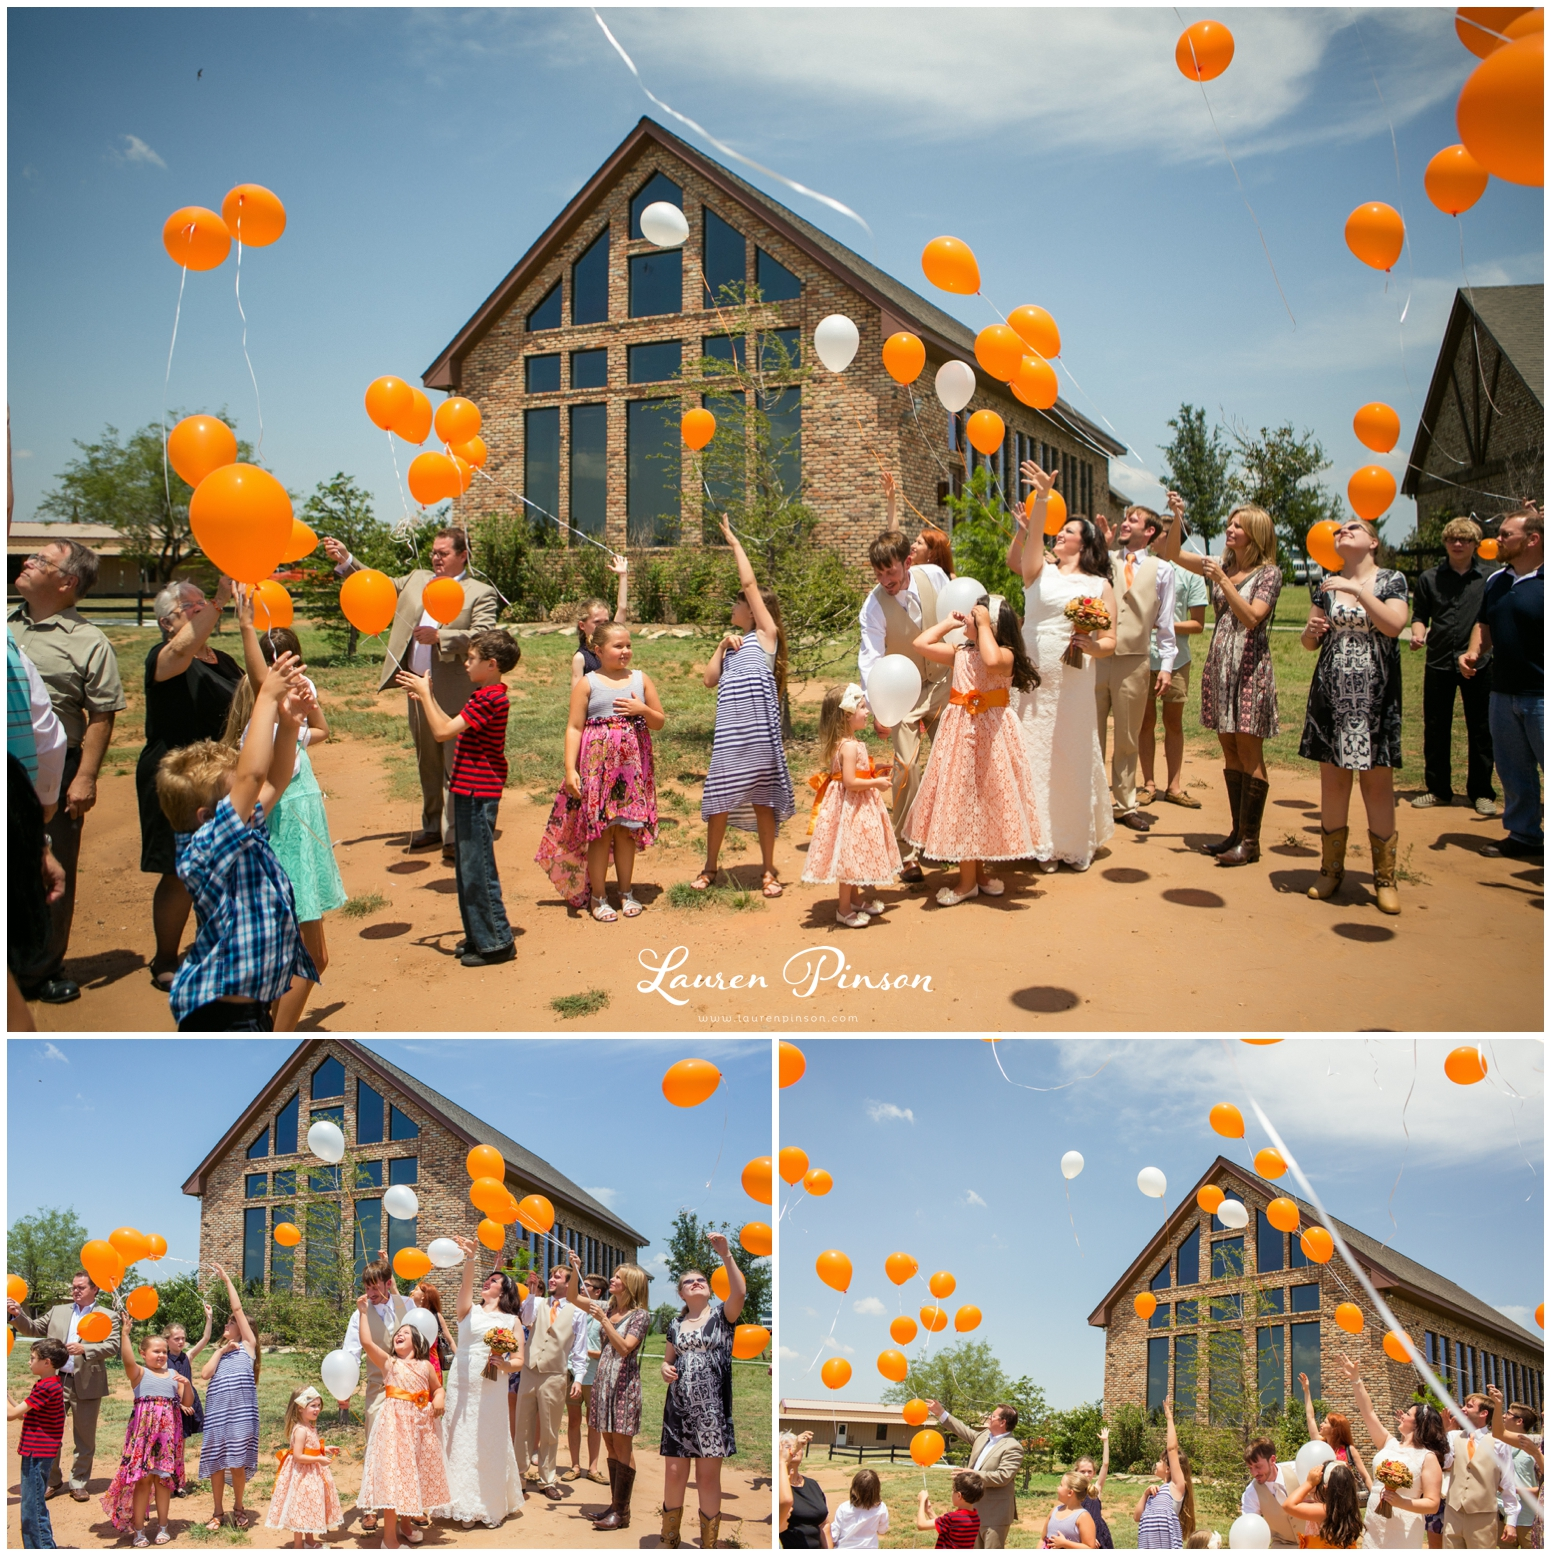 wichita-falls-coyote-ranch-resort-wedding-texas-photography-family-ceremony-balloons-rustic-lace_0338.jpg